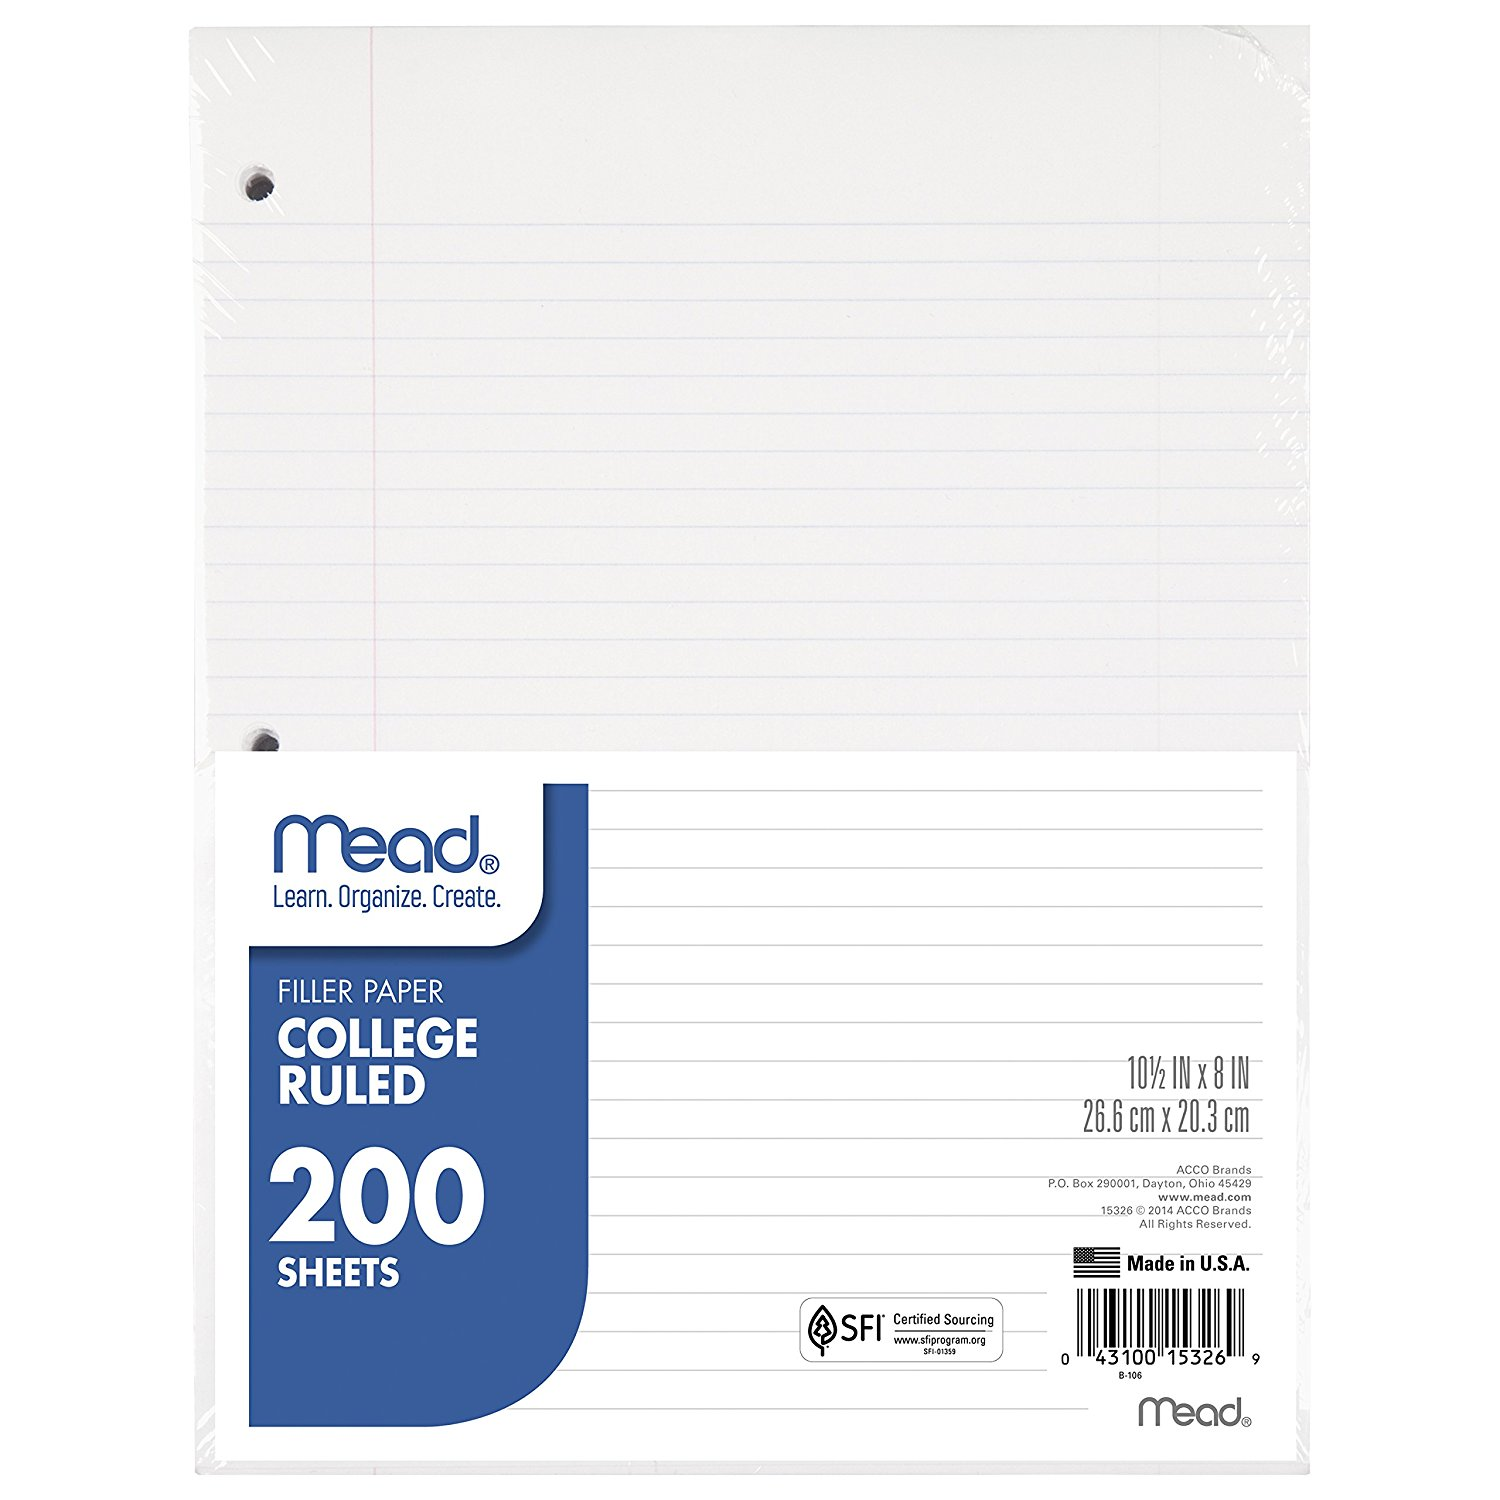 Filler Paper by , College Ruled By Mead - Walmart.com